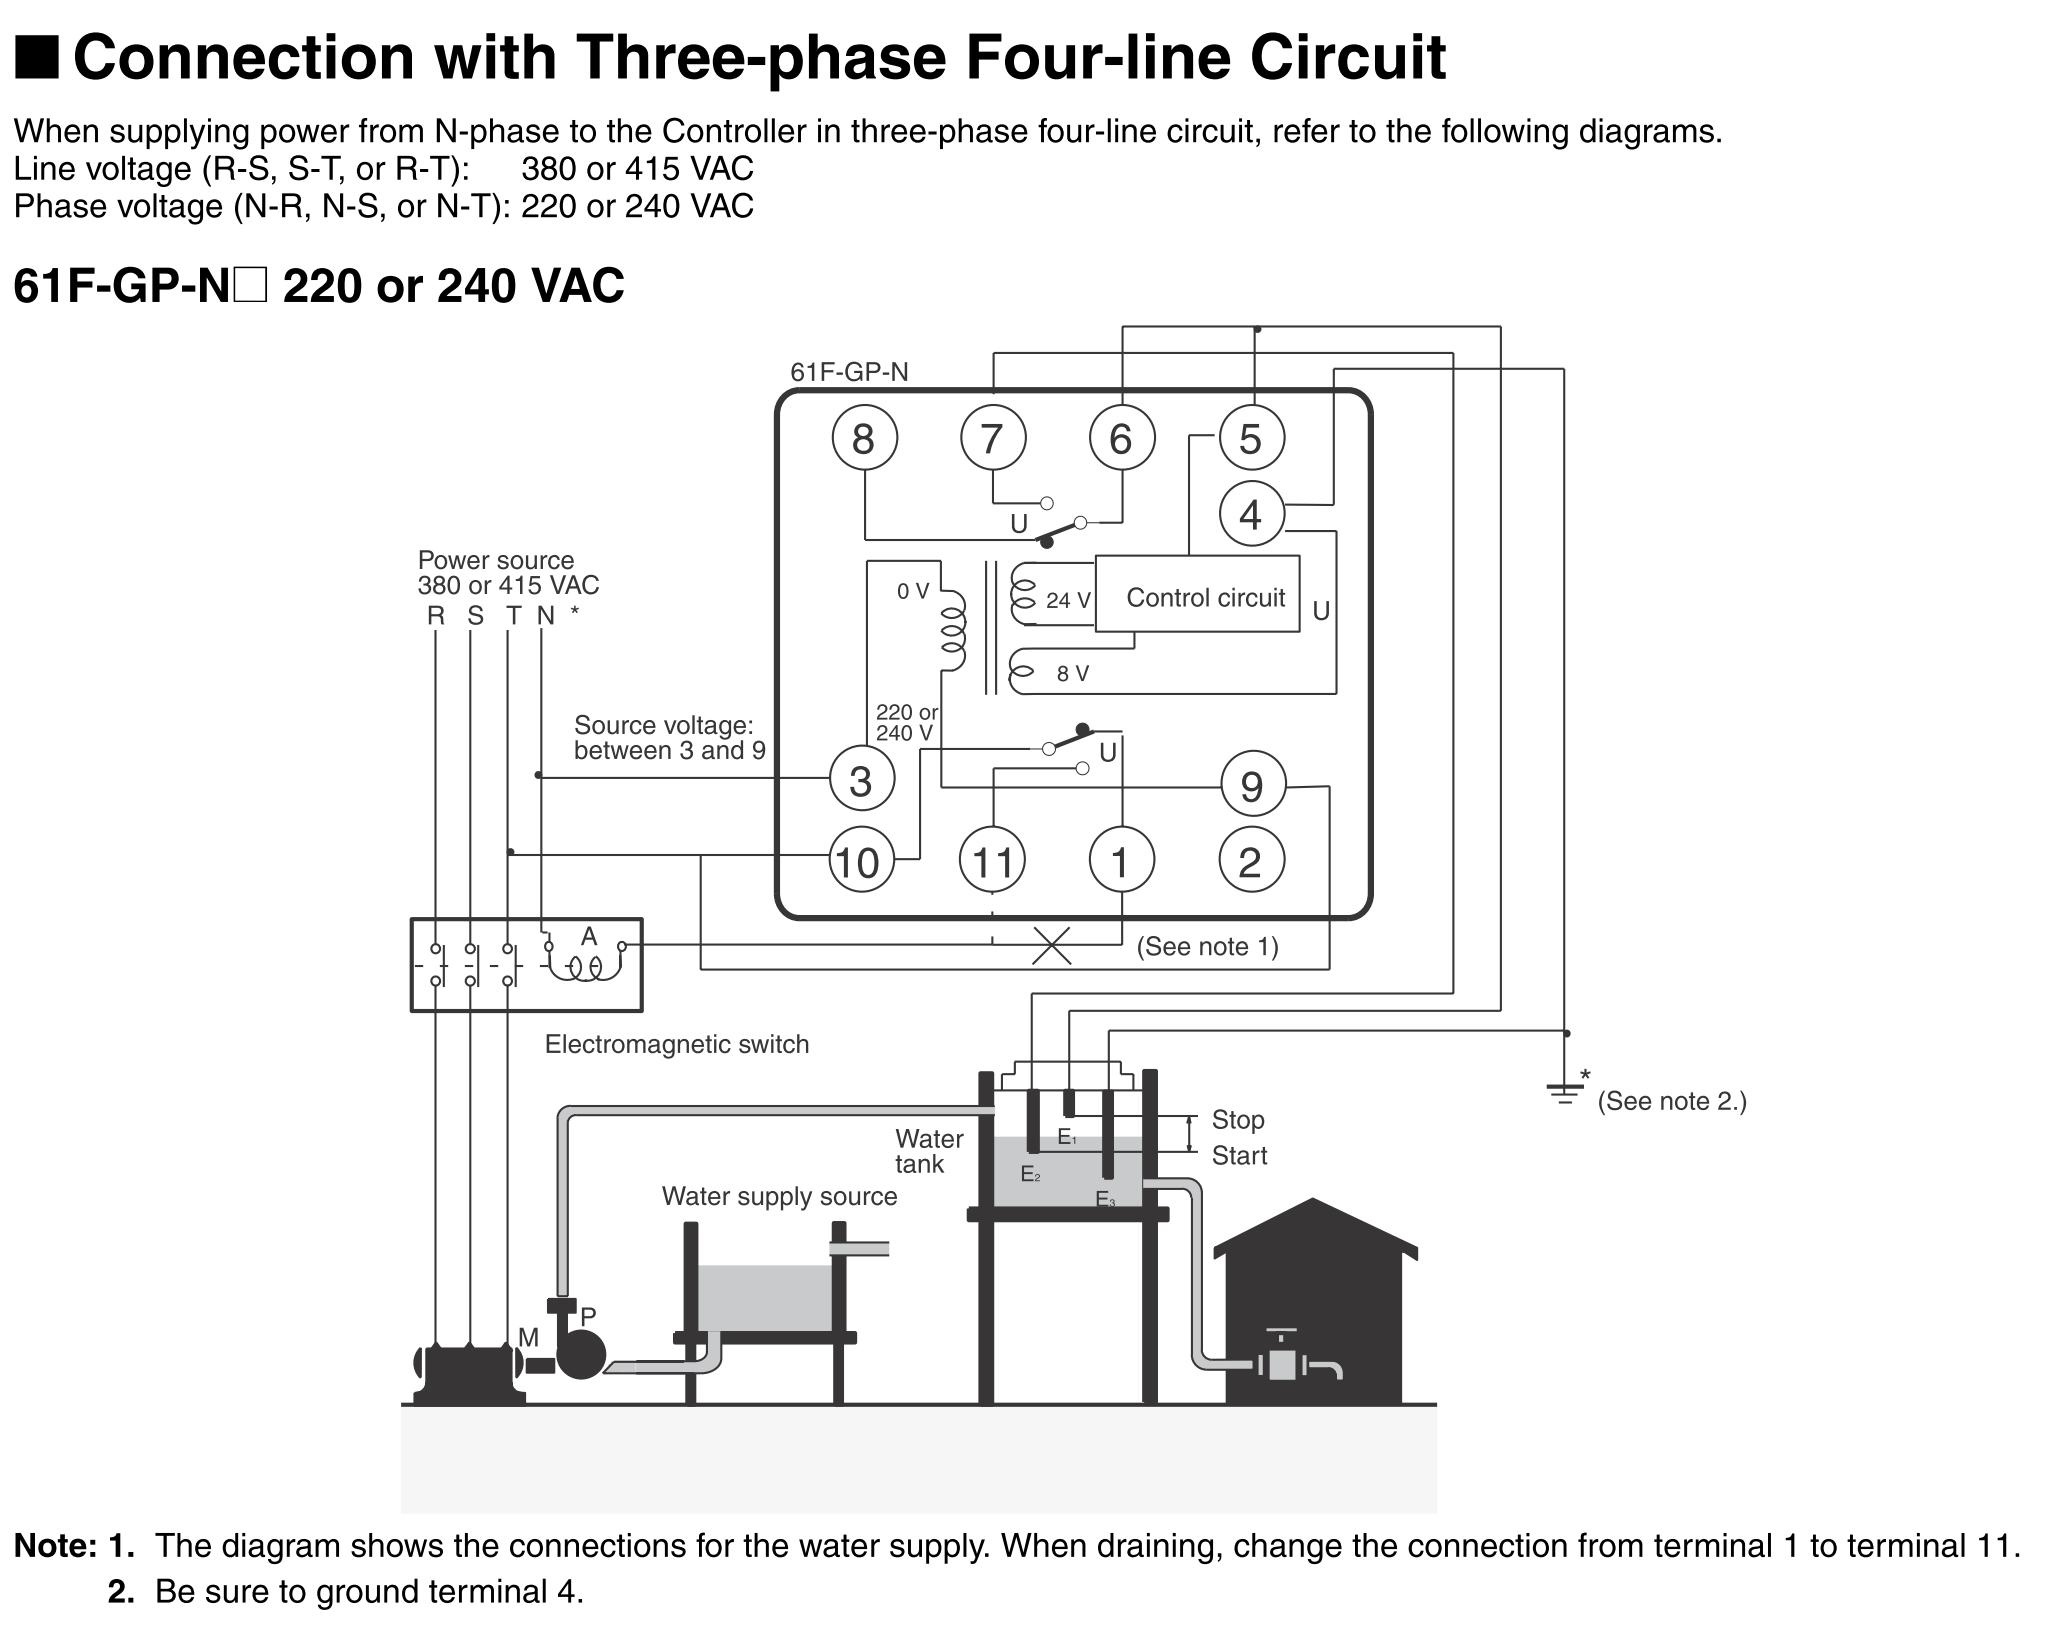 Omron 61f Gp N Wiring Diagram 29 Images Relay Circuit Connection With 3 Phase 4 Line Directory Image Plc Diagrams